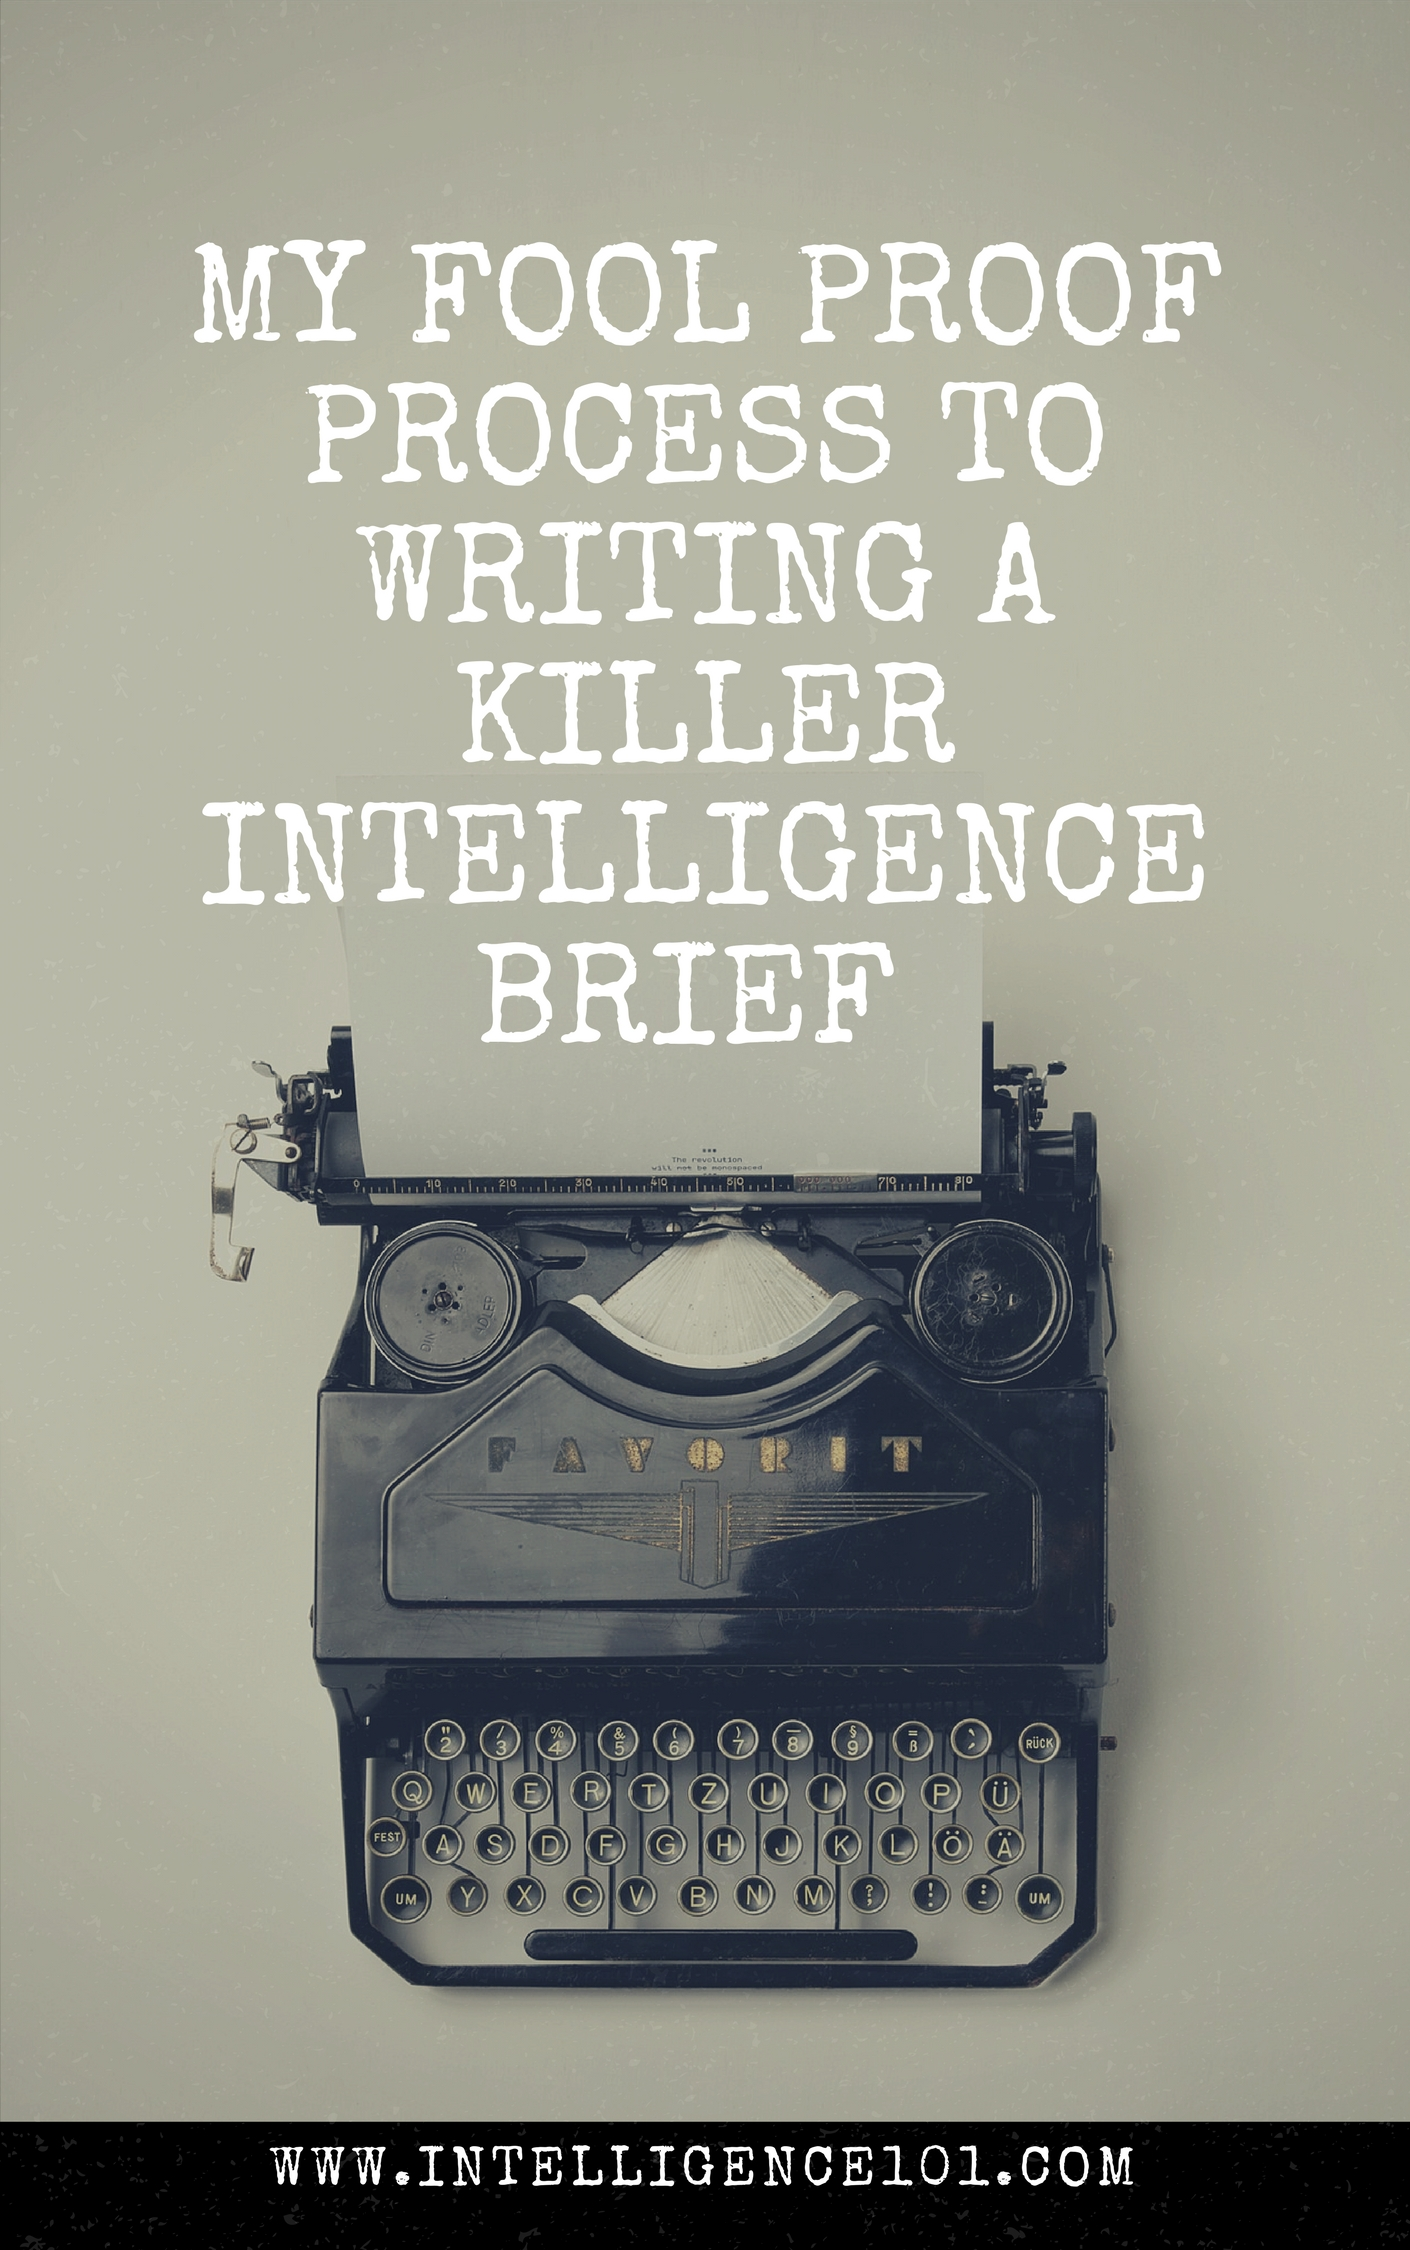 My Fool Proof Process to Writing a Killer Intelligence Brief